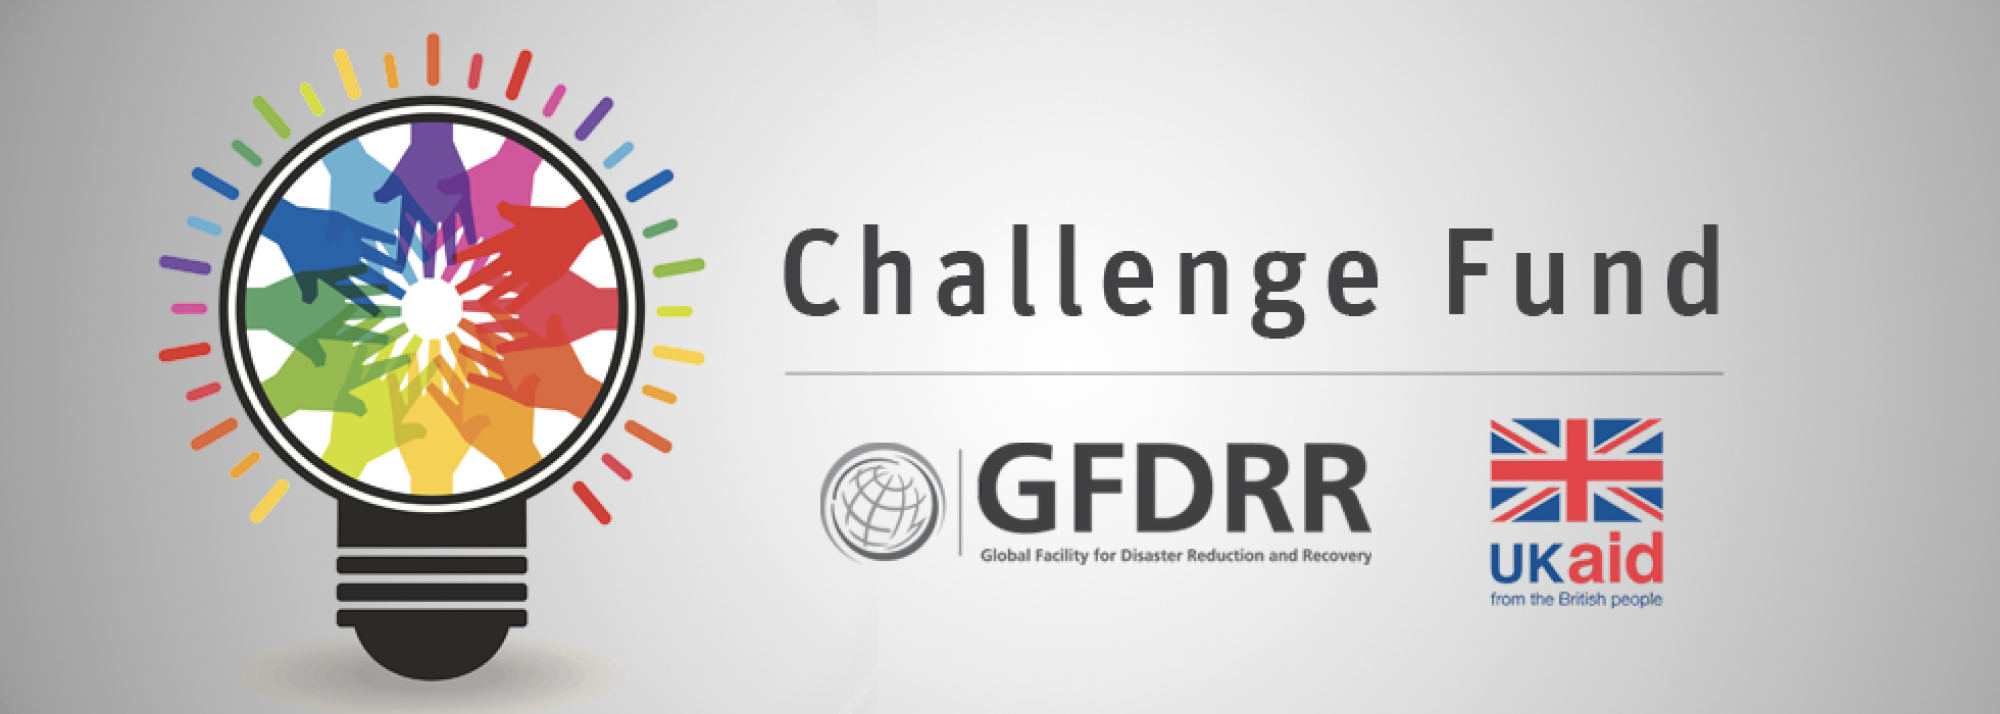 GFDRR and DFID announce a challenge fund.